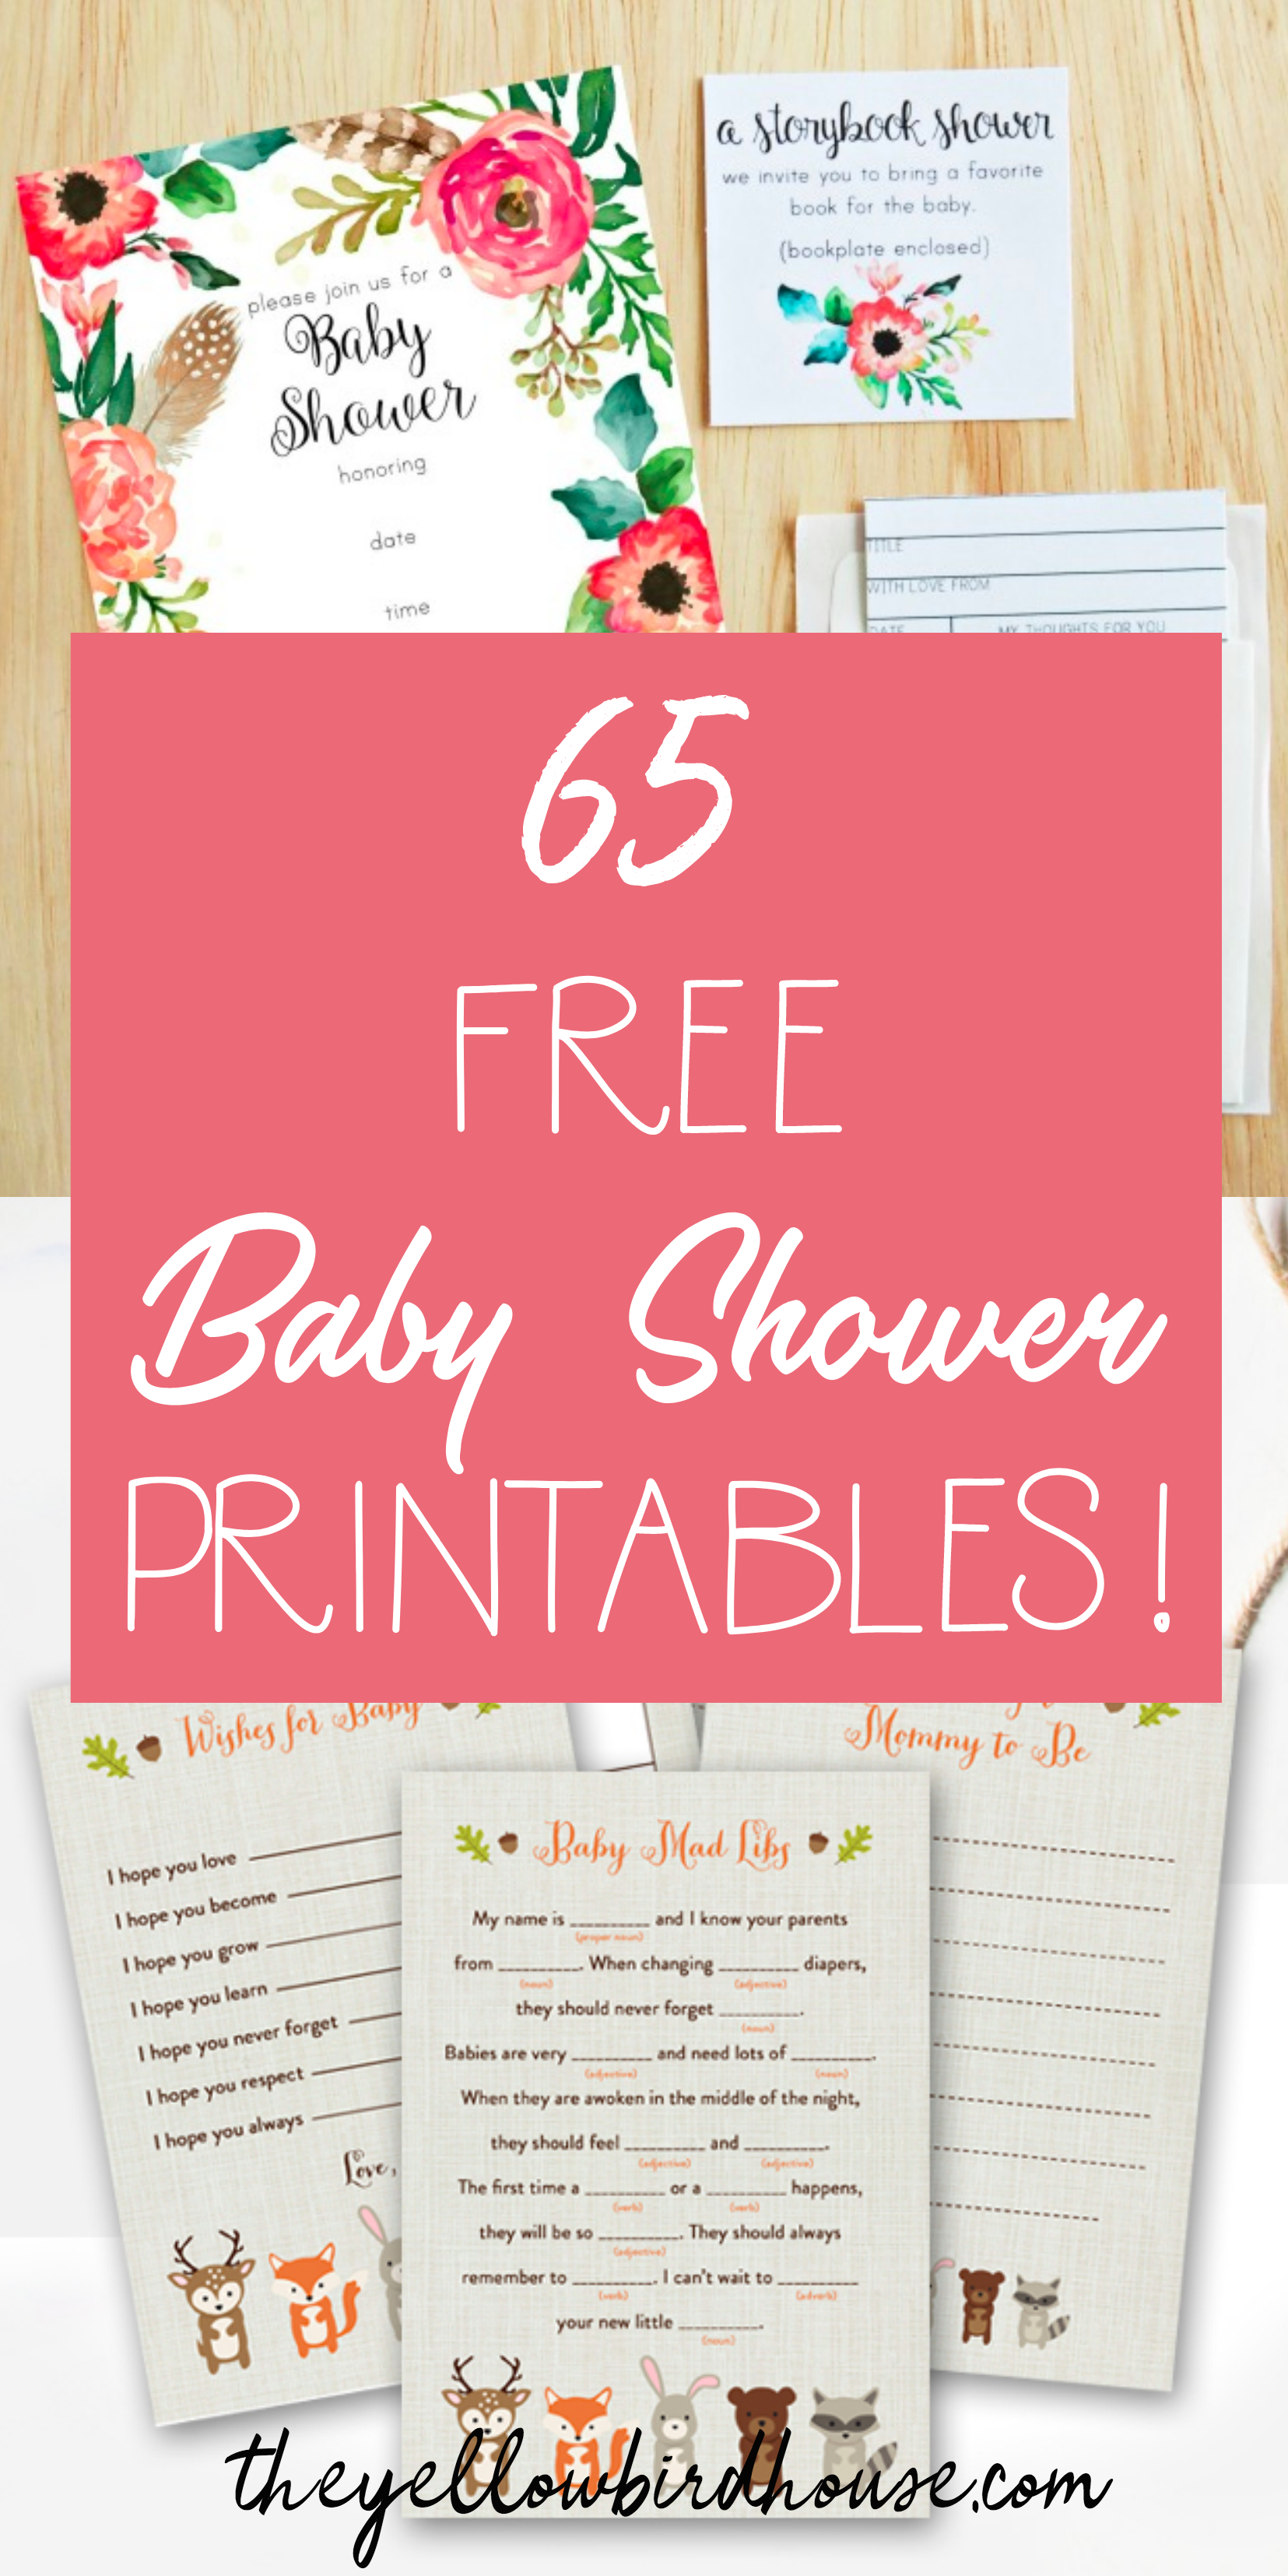 65 Free Baby Shower Printables For An Adorable Party - Baby Shower Templates Free Printable